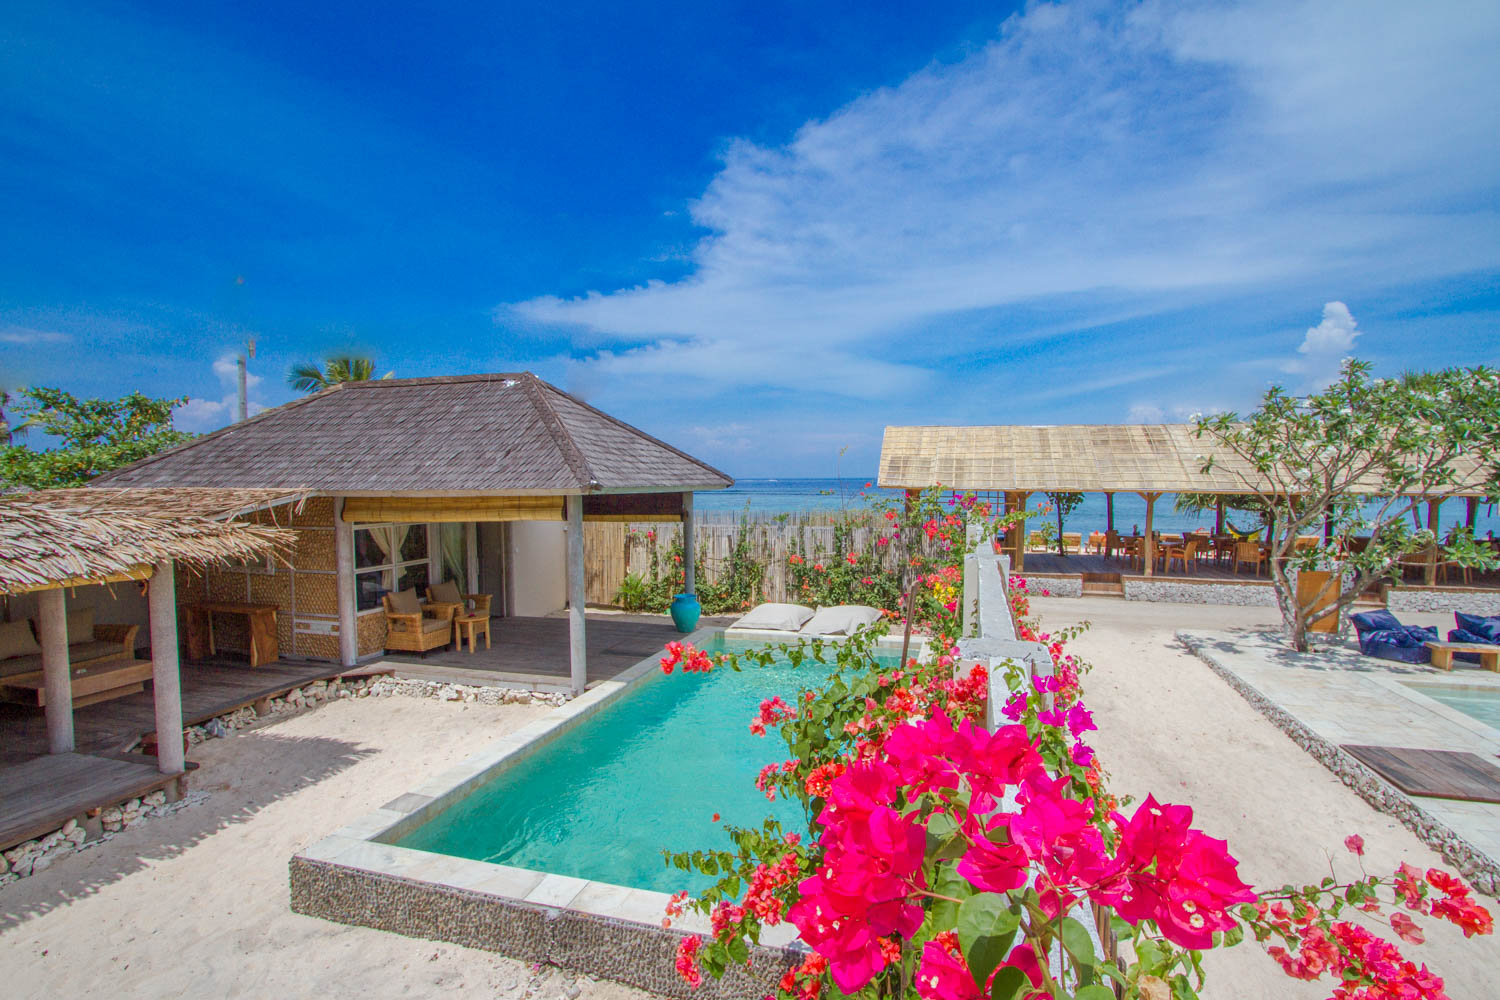 Huge bungalow - Avia Villa resort - Gili Meno